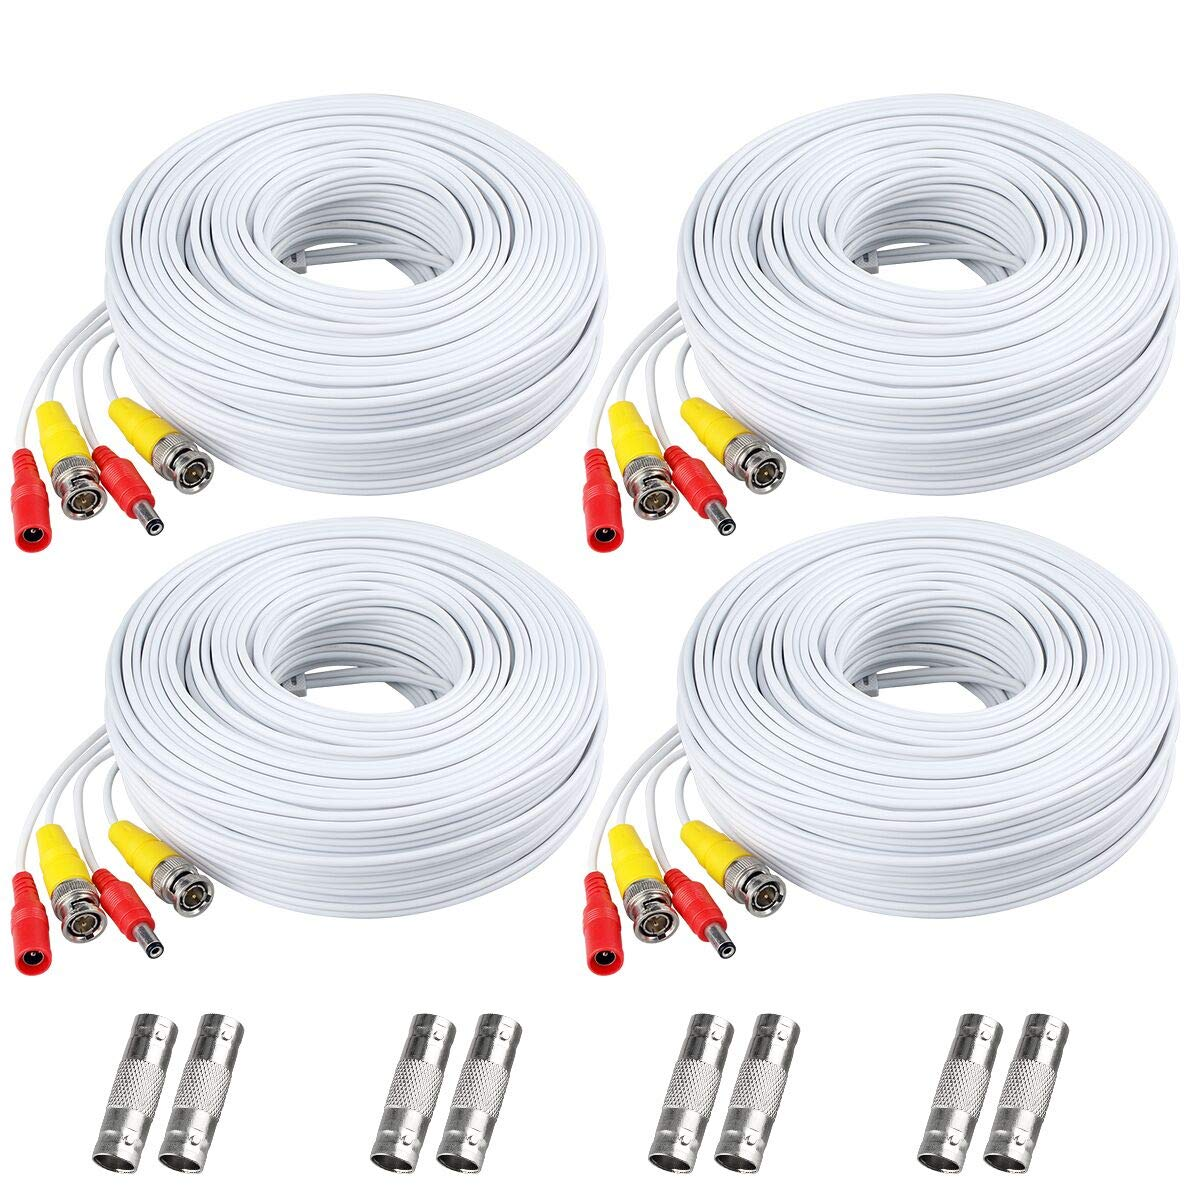 2 Pack 150ft Audio Video Power Pre-made Cable HD Security Camera Wire Cord WVE